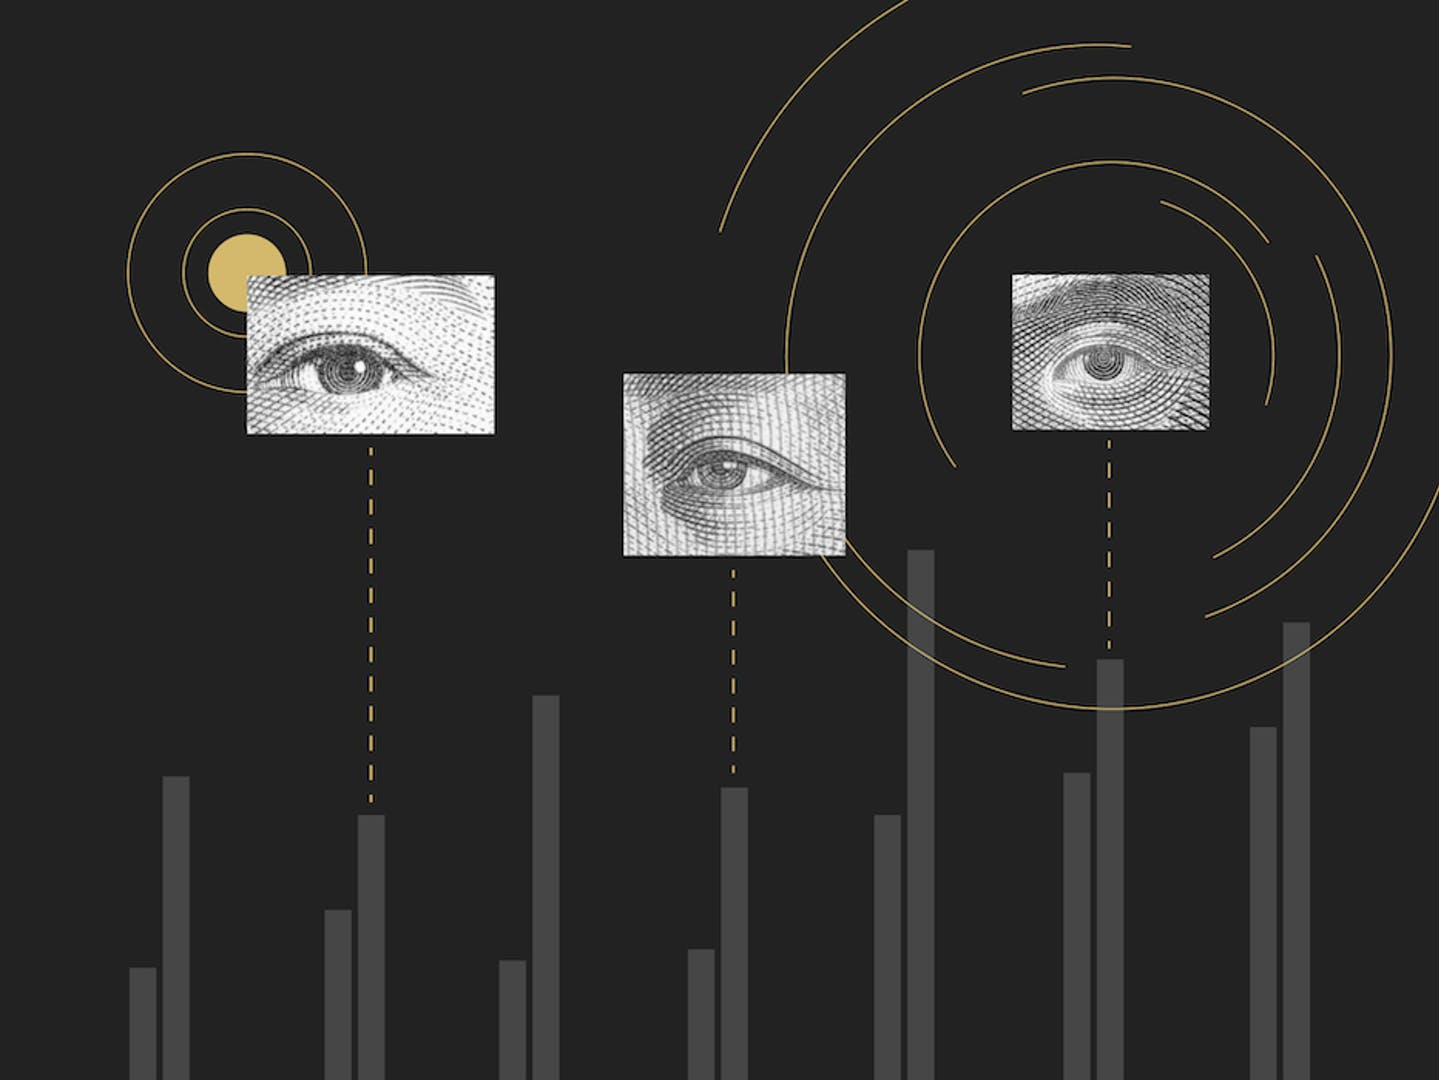 A schematic of eyes looking at search engines.